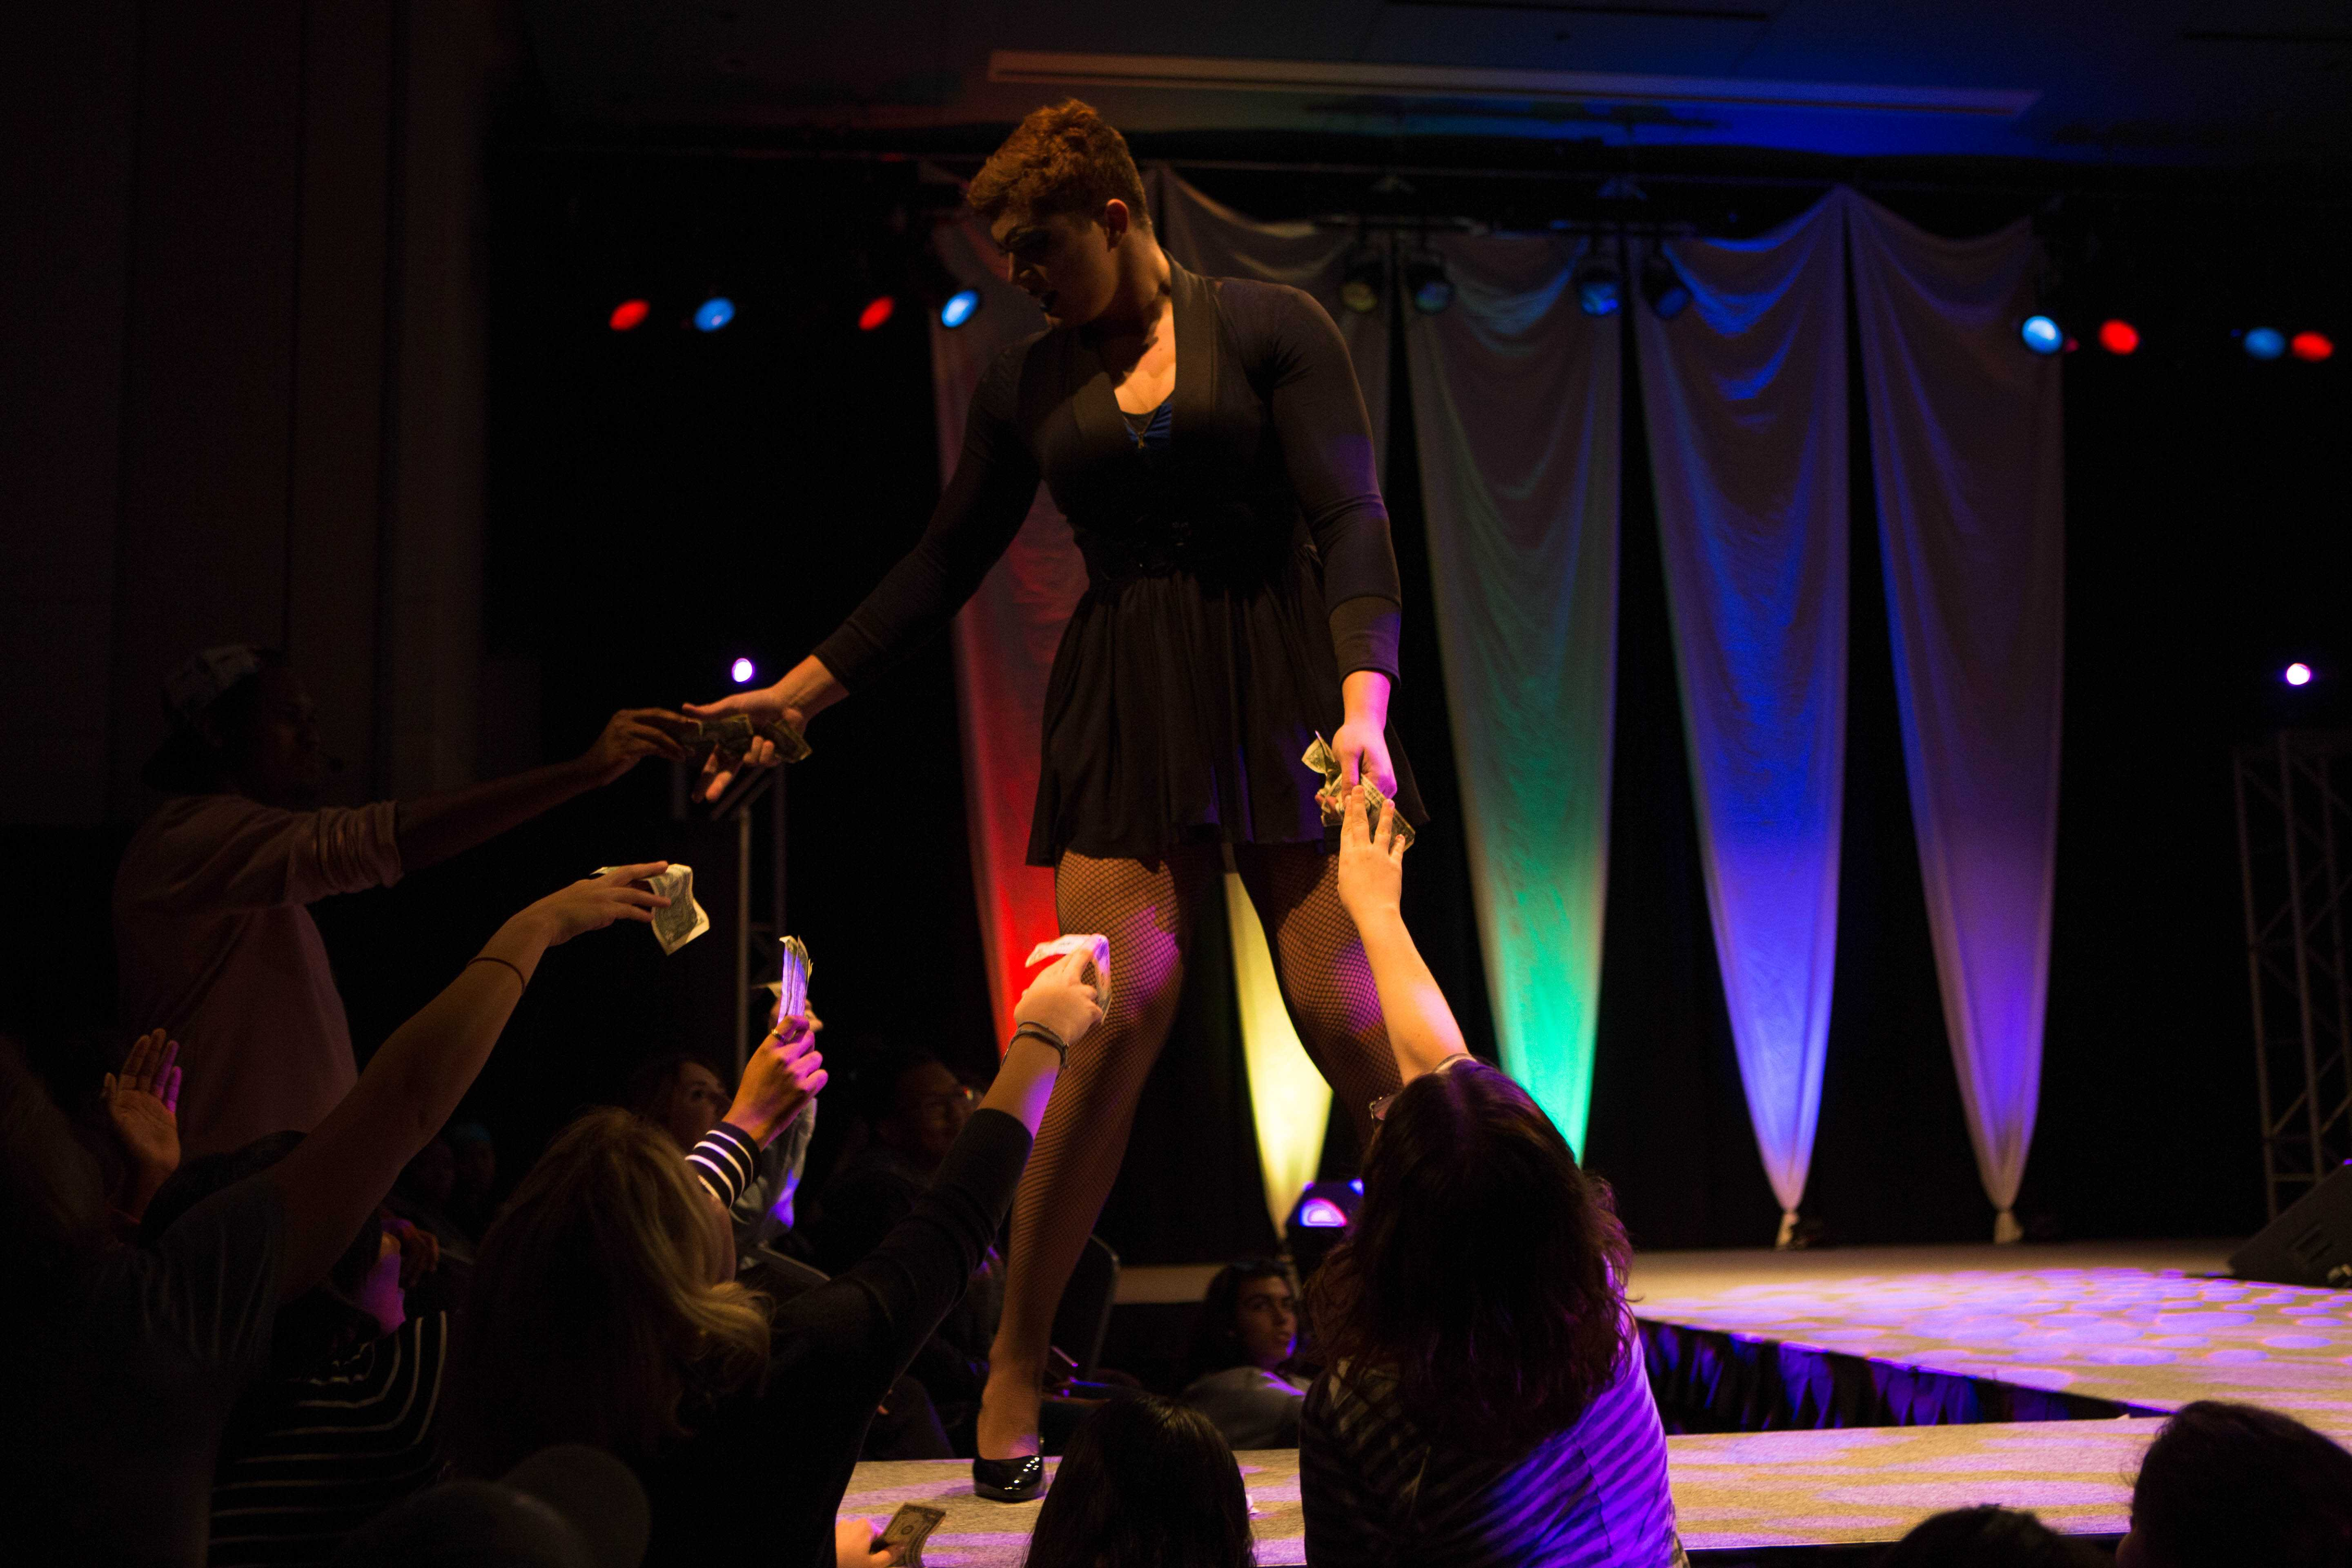 Drag Queens perform at Vanderbilt during Lambda's annual Drag Show on Wednesday, October 26, 2017